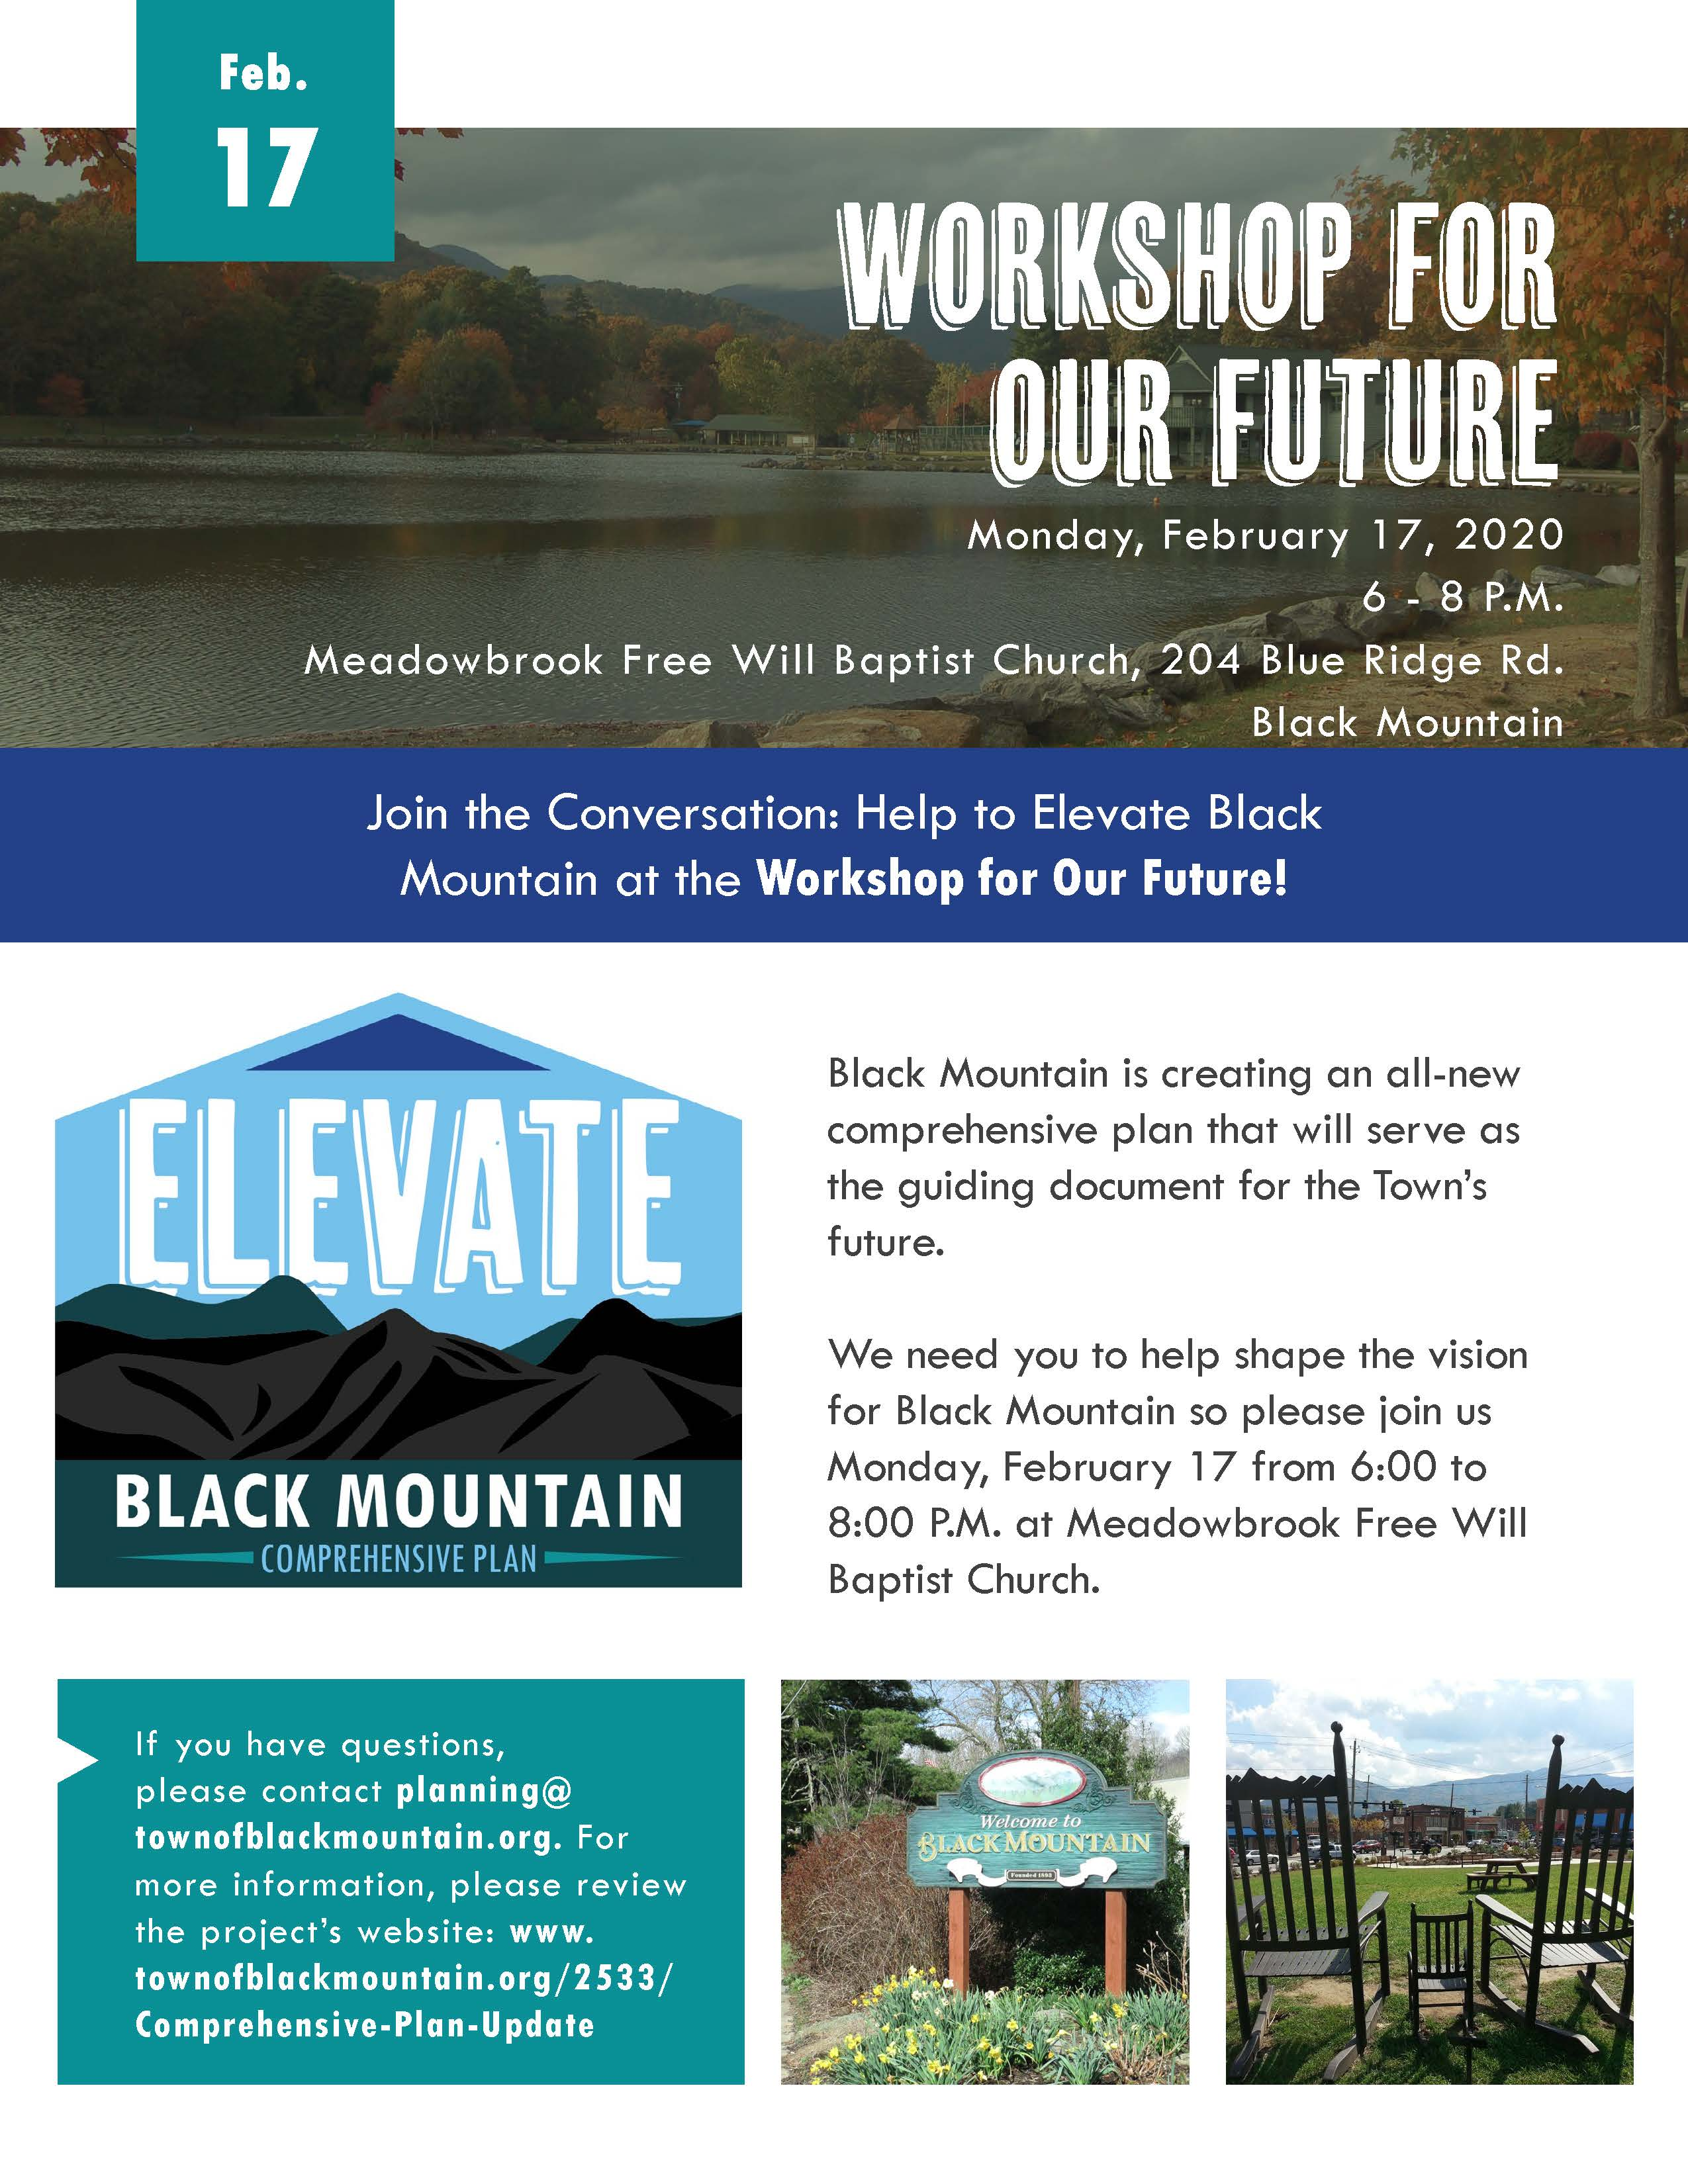 Elevate Black Mountain Workshop for our Future Flyer